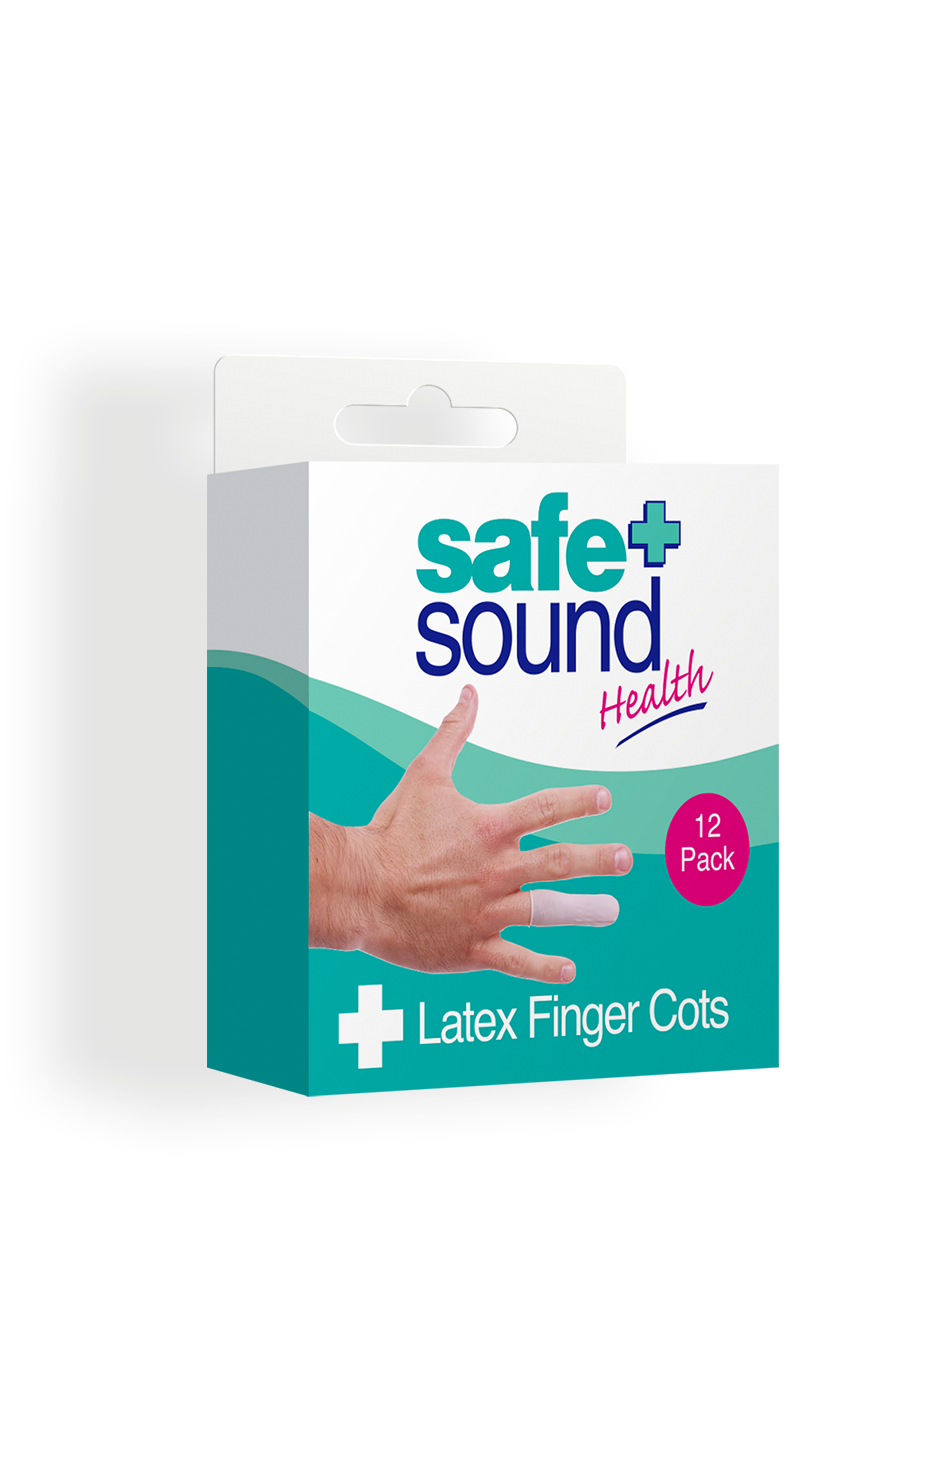 Safe and Sound Health Latex finger Cots